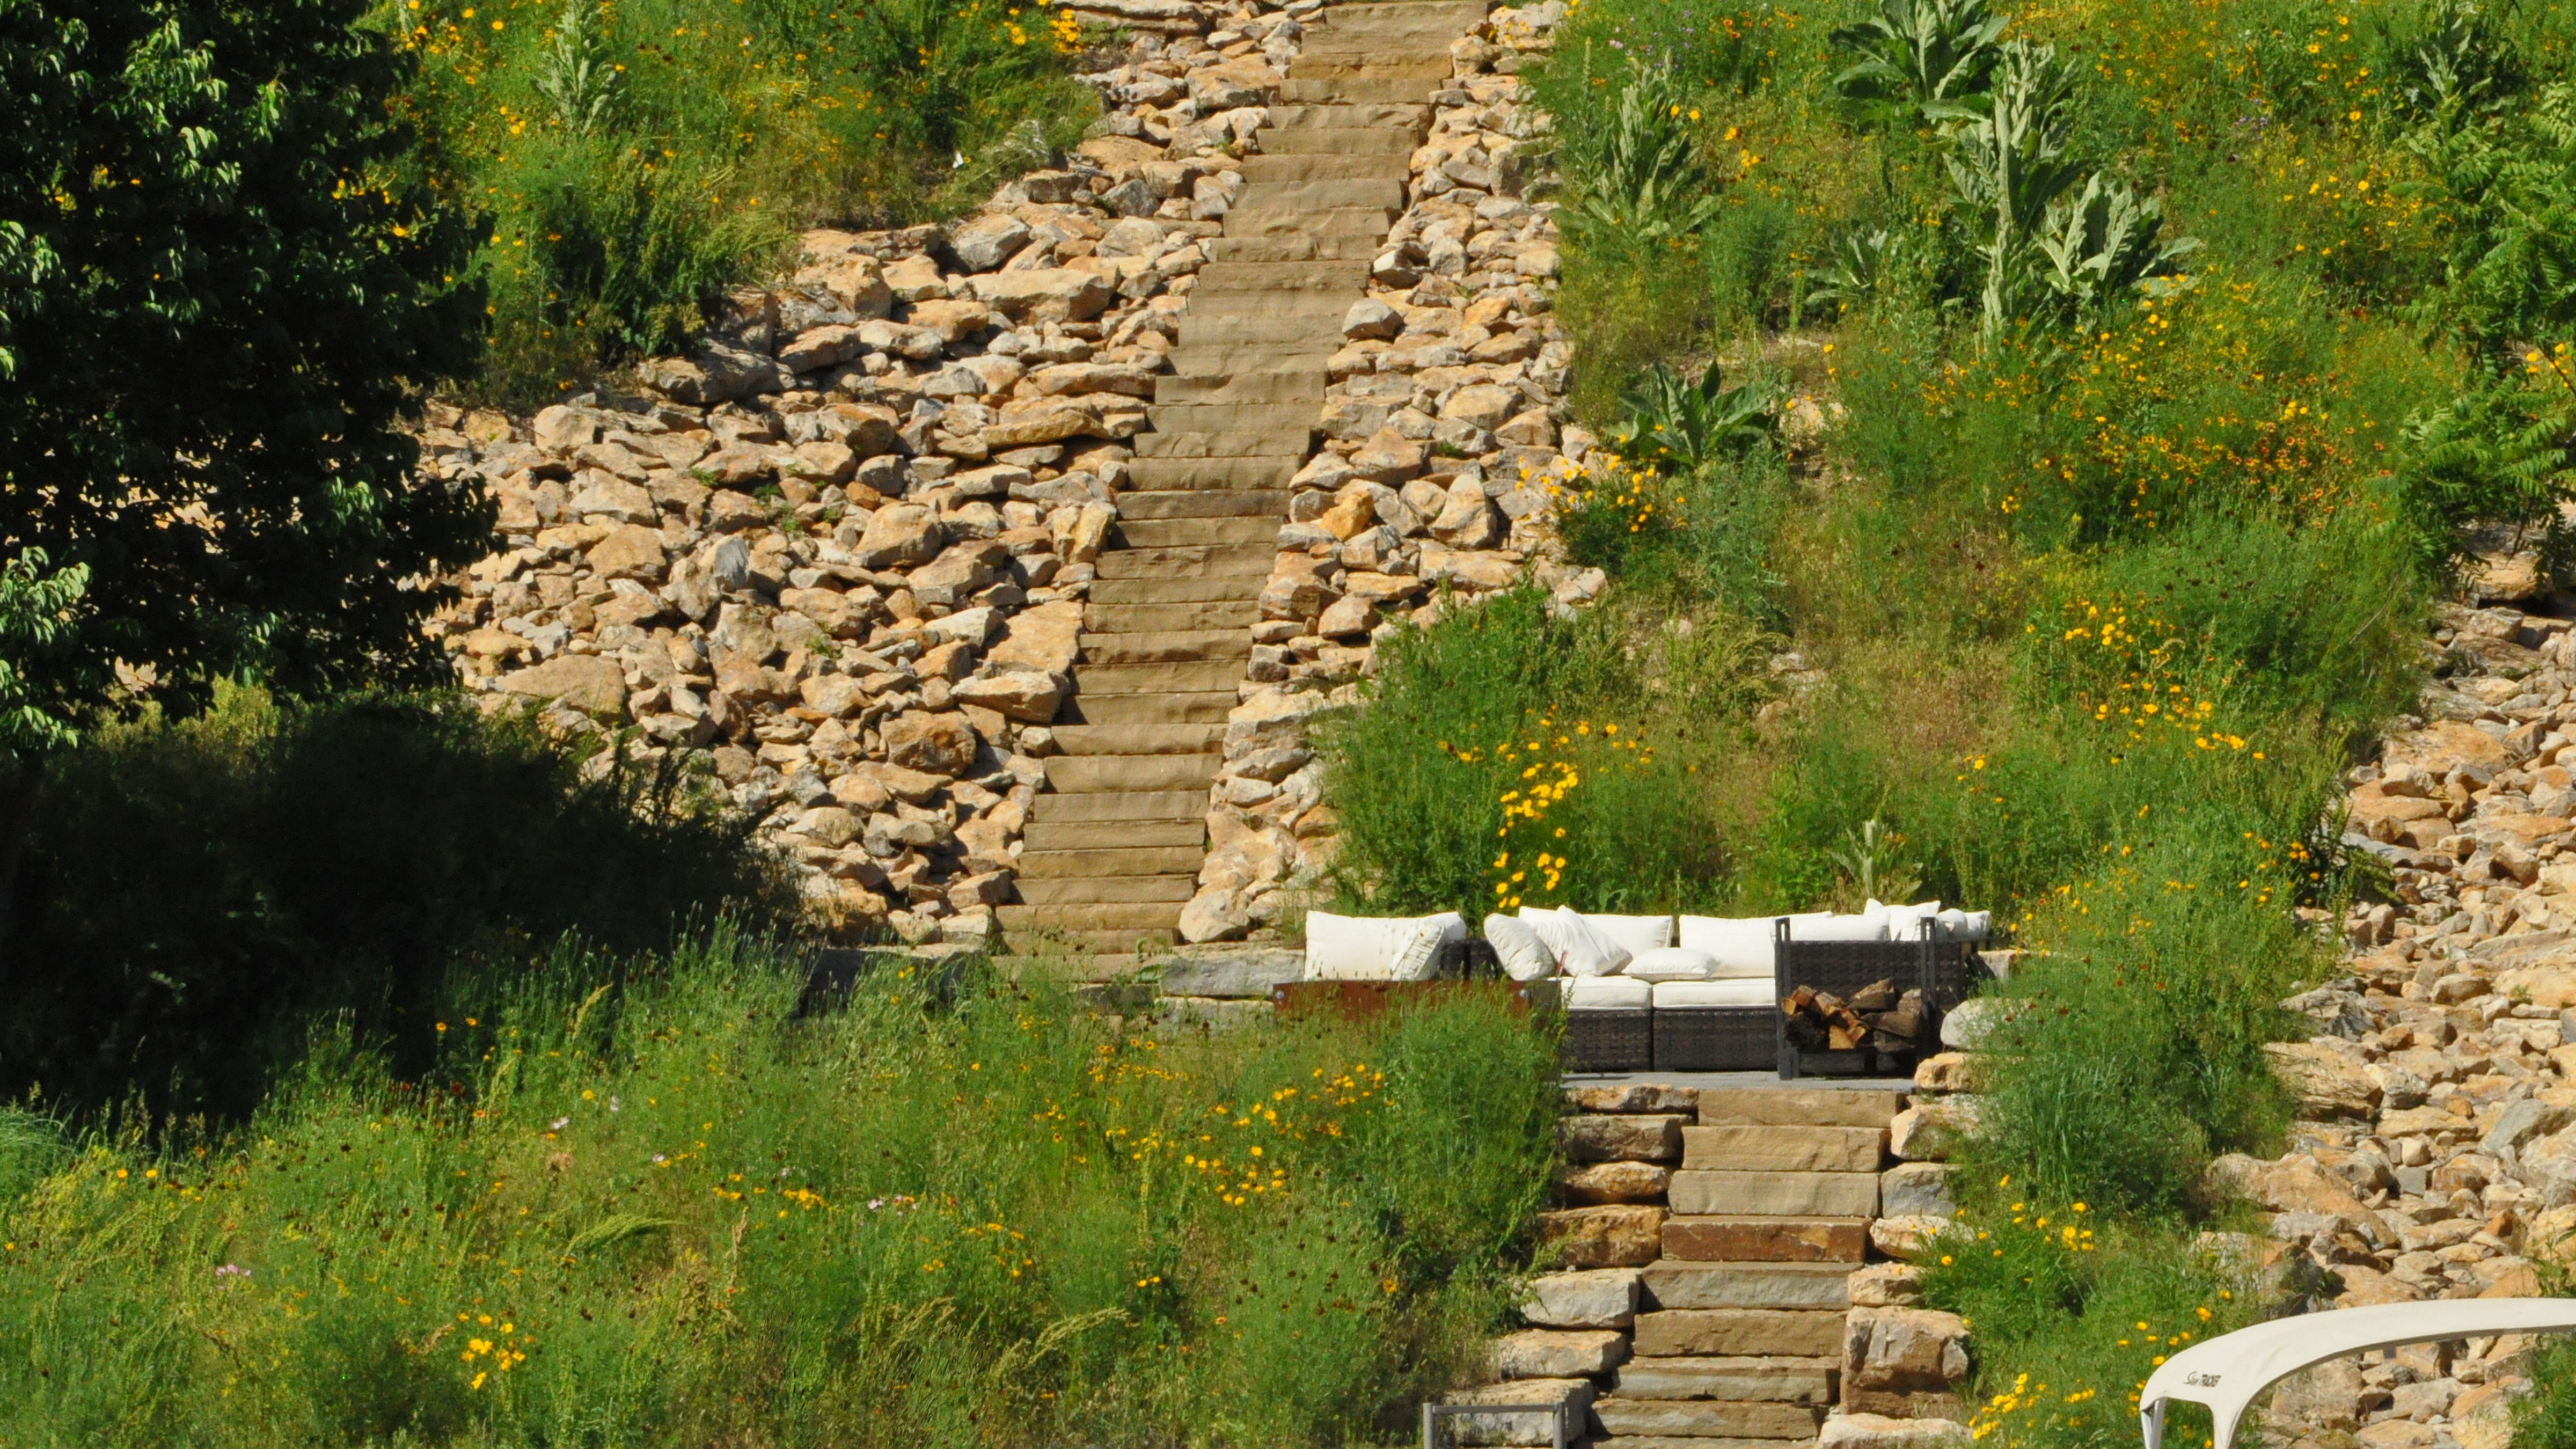 Native plants thrive on the hot, sunny hillside with minimal maintenance. As a further benefit, the stone provides a pathway for rooftop water flow to reach the lake without creating erosion issues or lake contamination. Since natives rarely need chemical applications, there is little chance of water pollution from run-off.